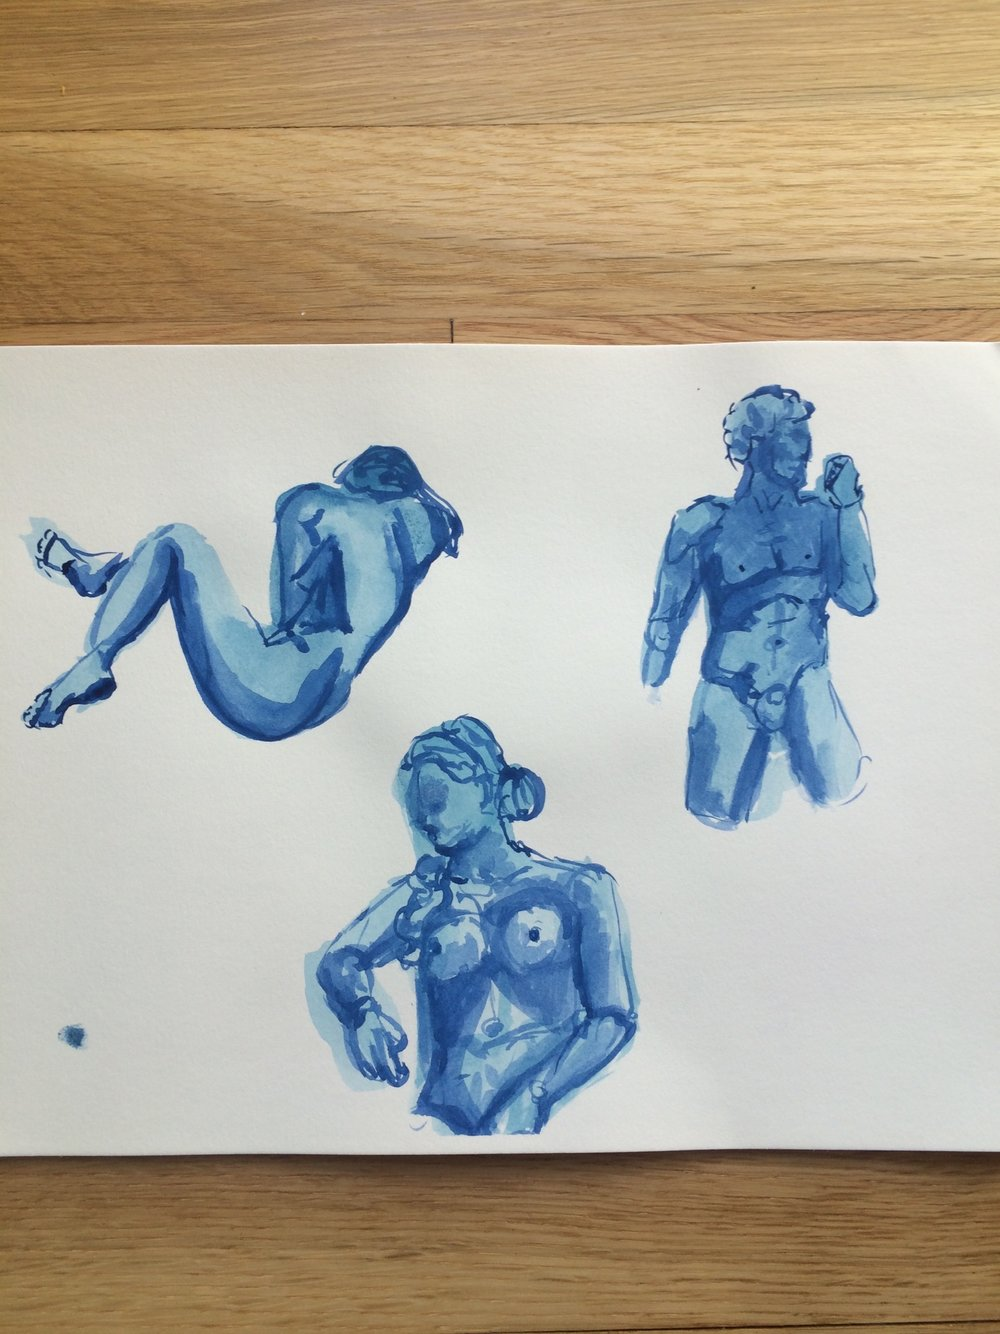 Studies of various sculptures